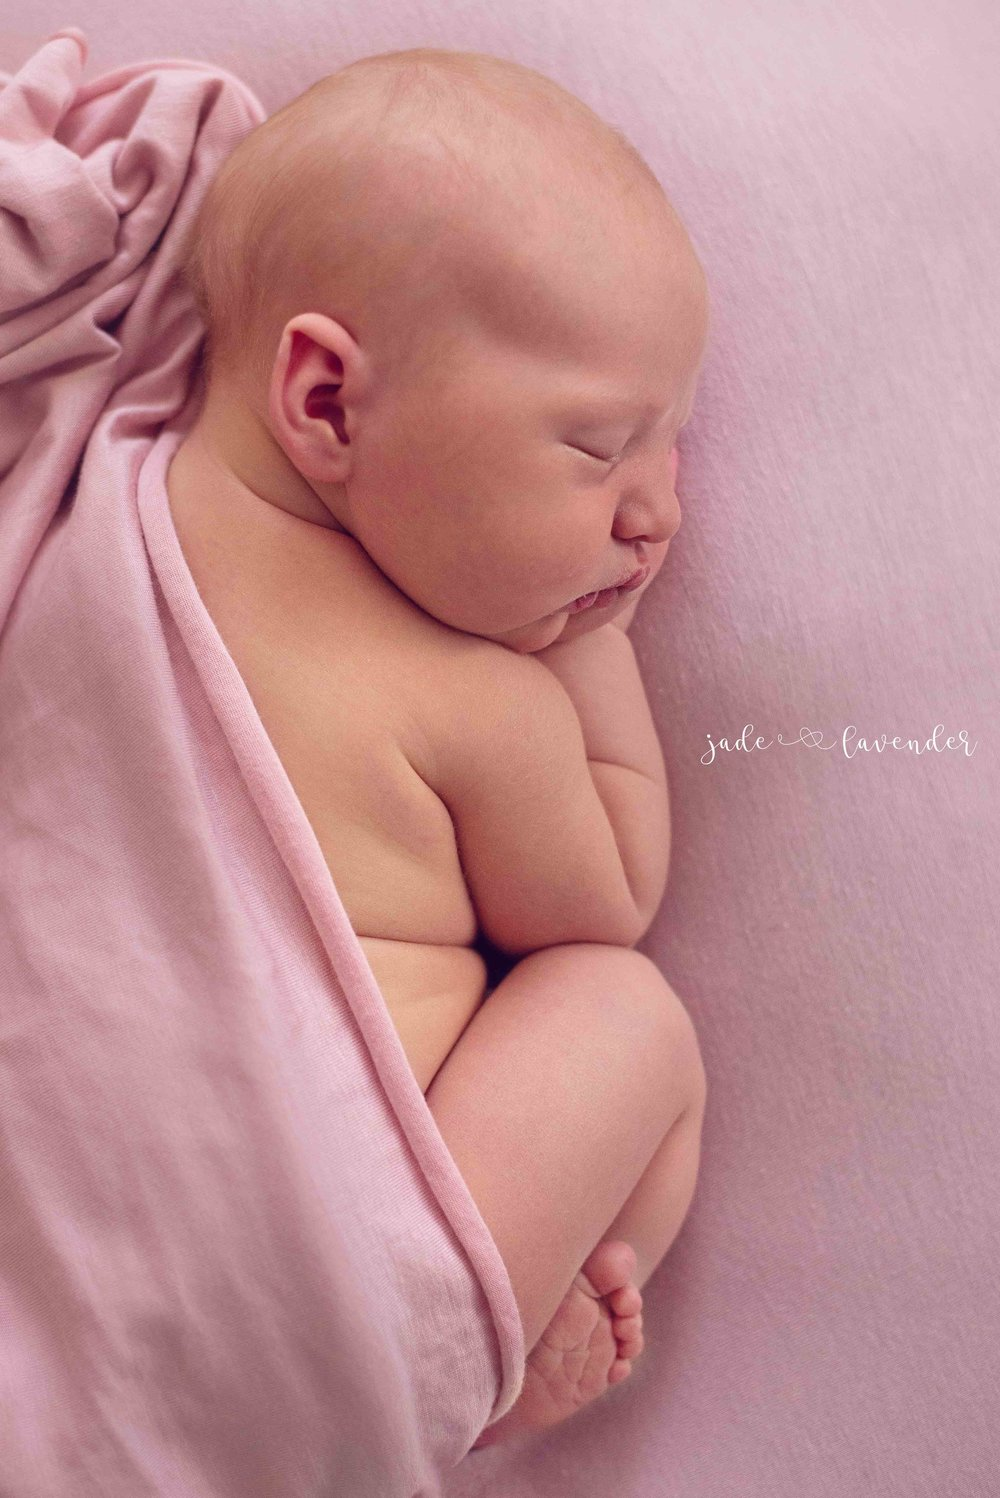 baby-images-newborn-pictures-cute-newborn-baby-pink-spokane-washingon.jpg